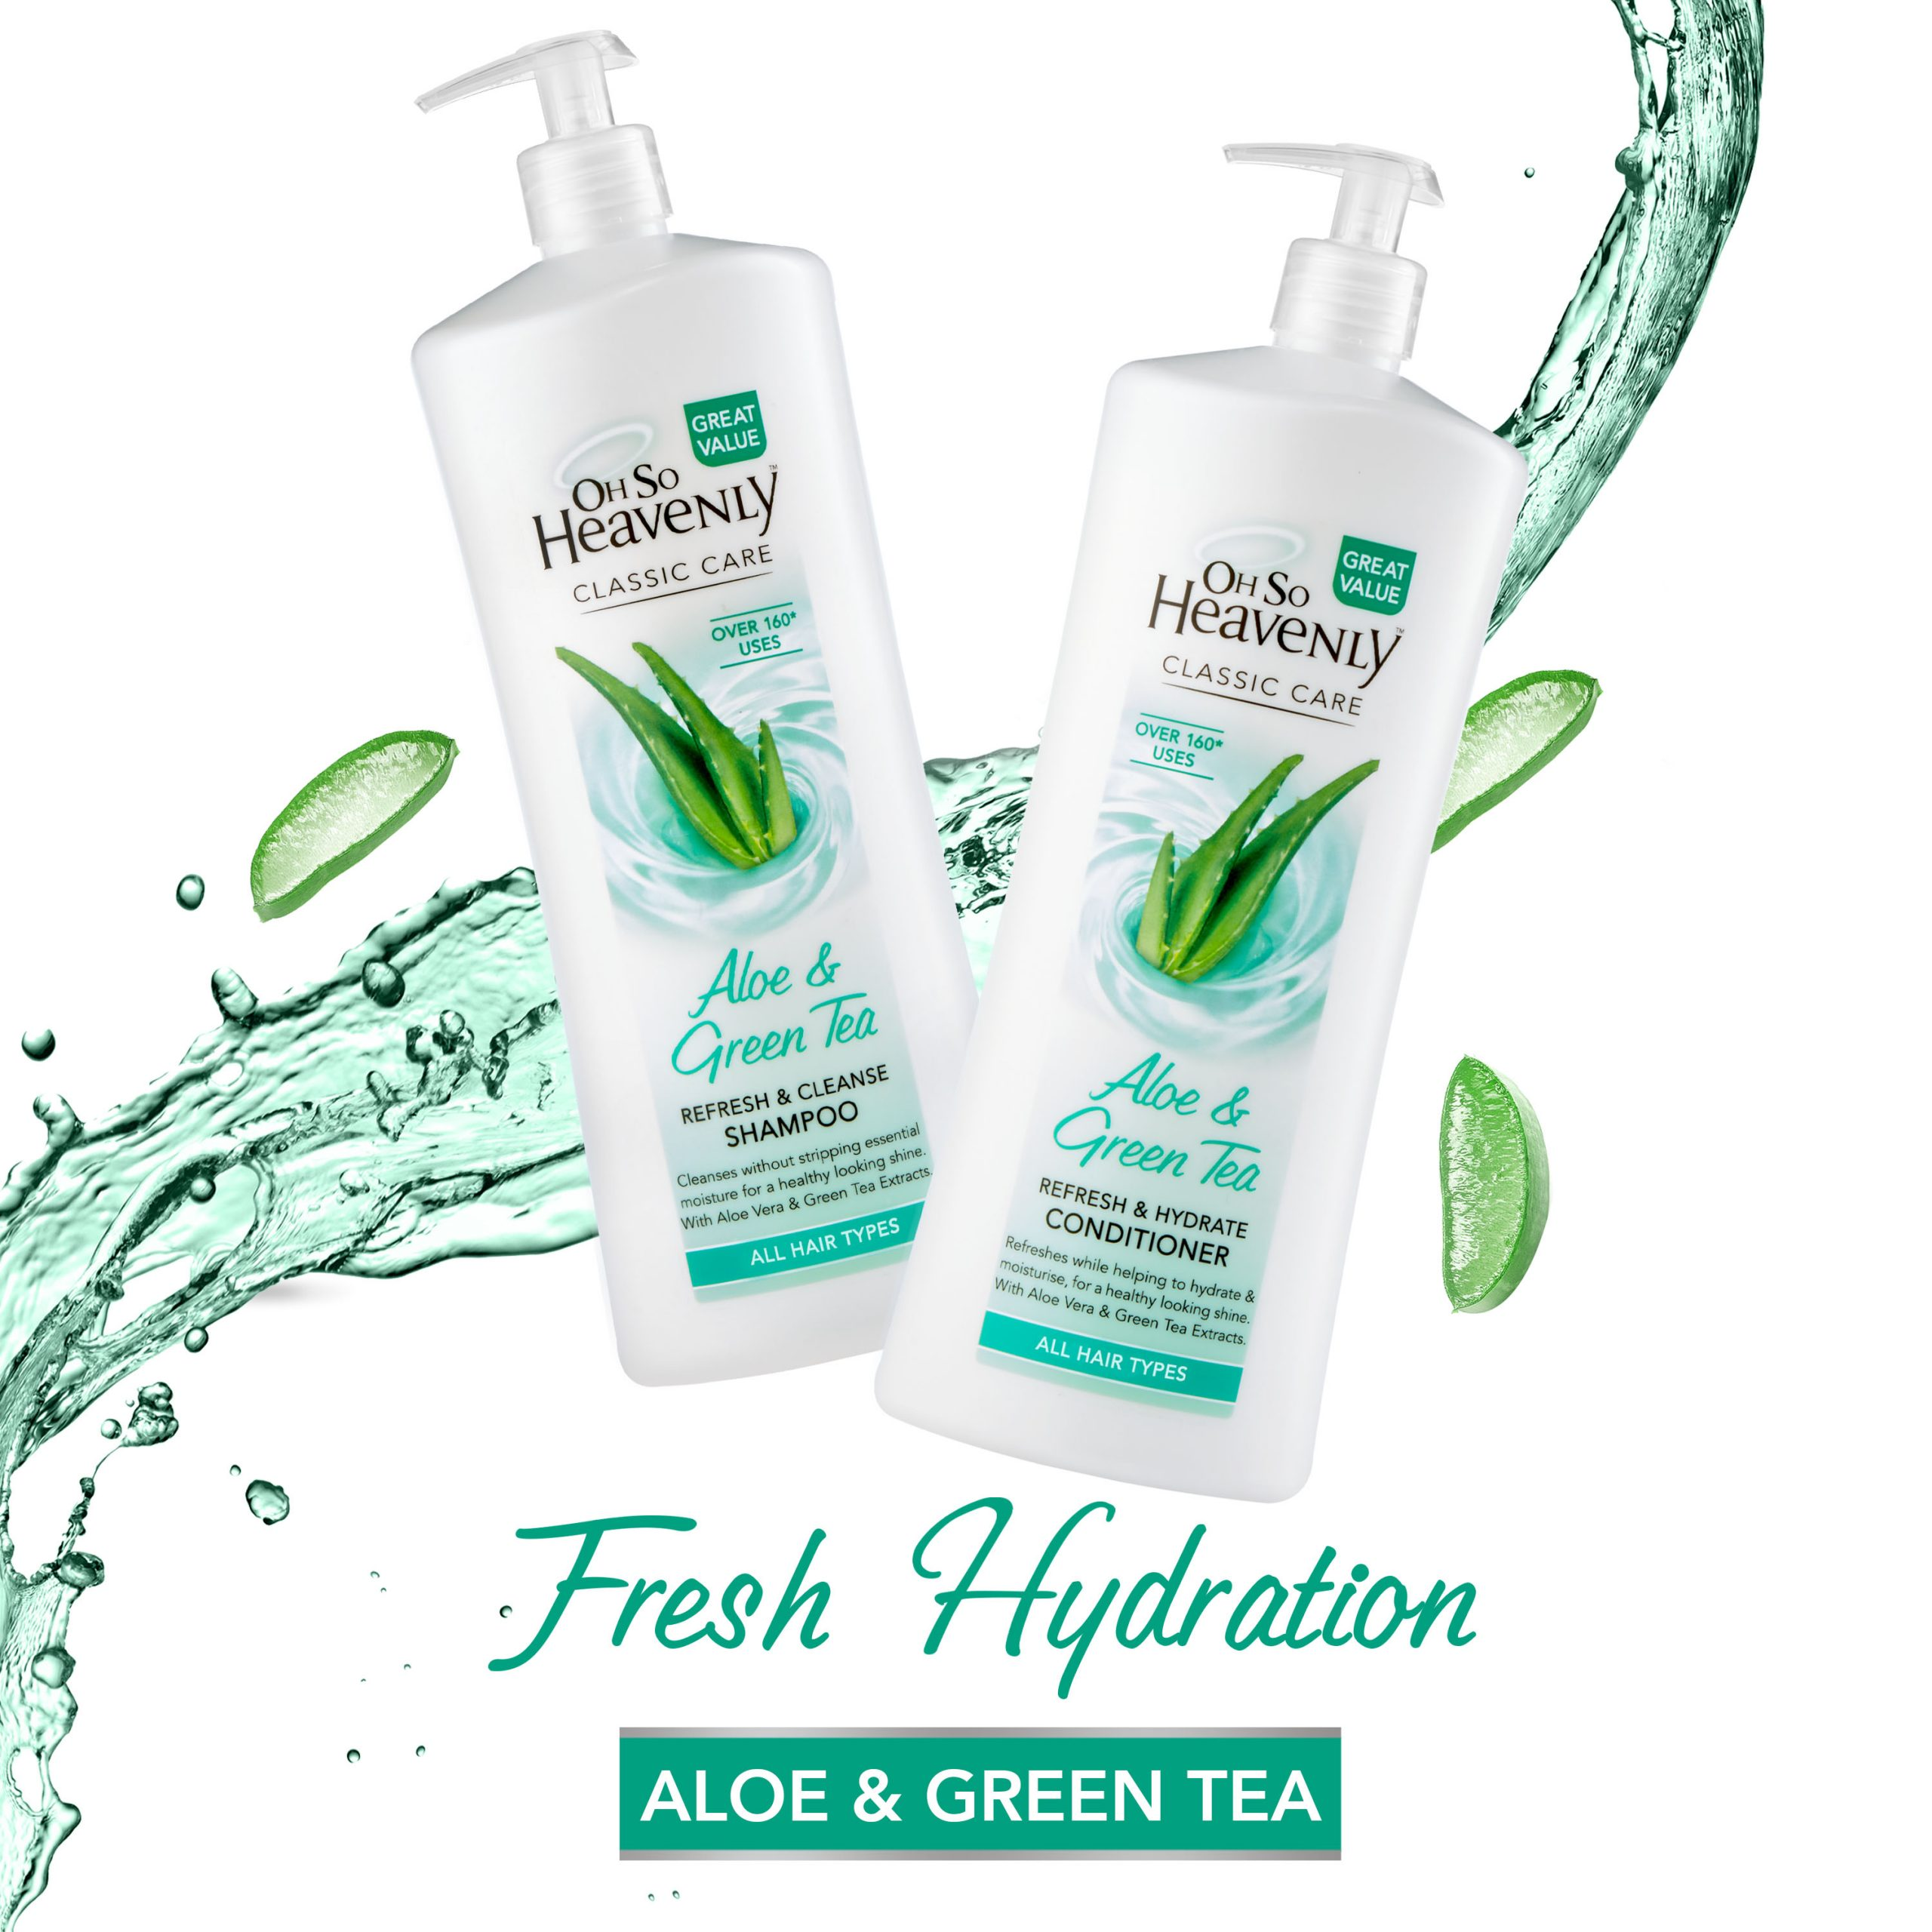 Hair_Landing Page Images_Aloe_1